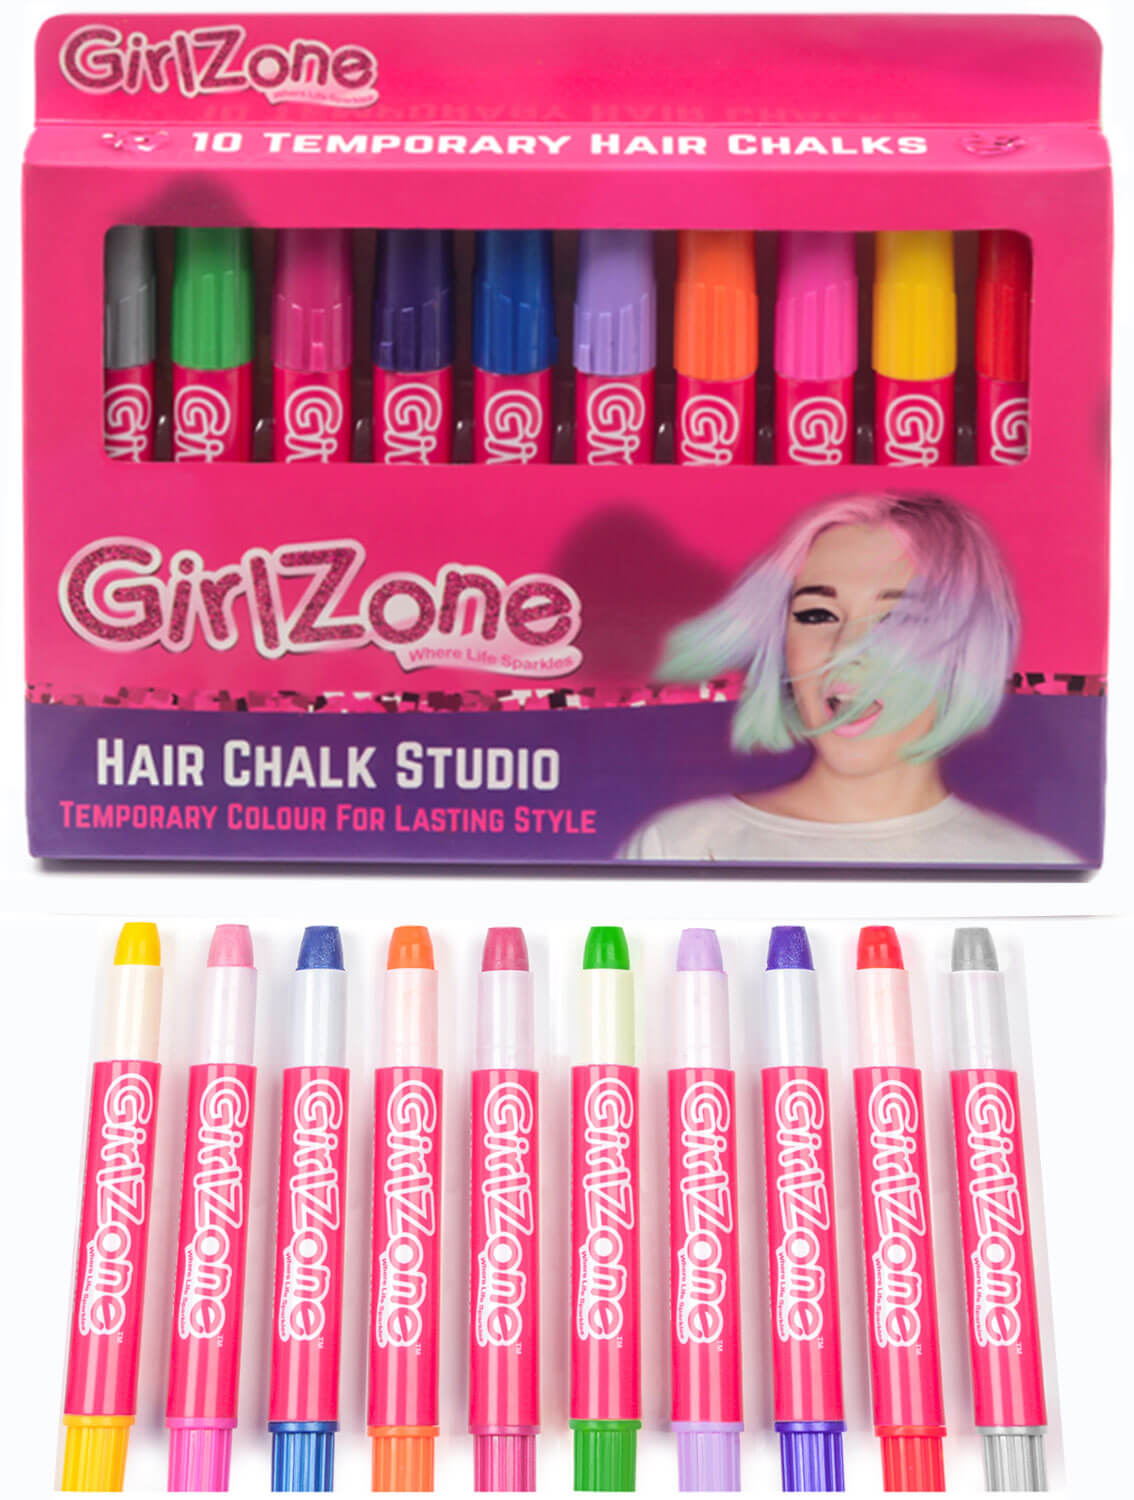 Temporary hair chalk for kids, GirlZone hair chalk